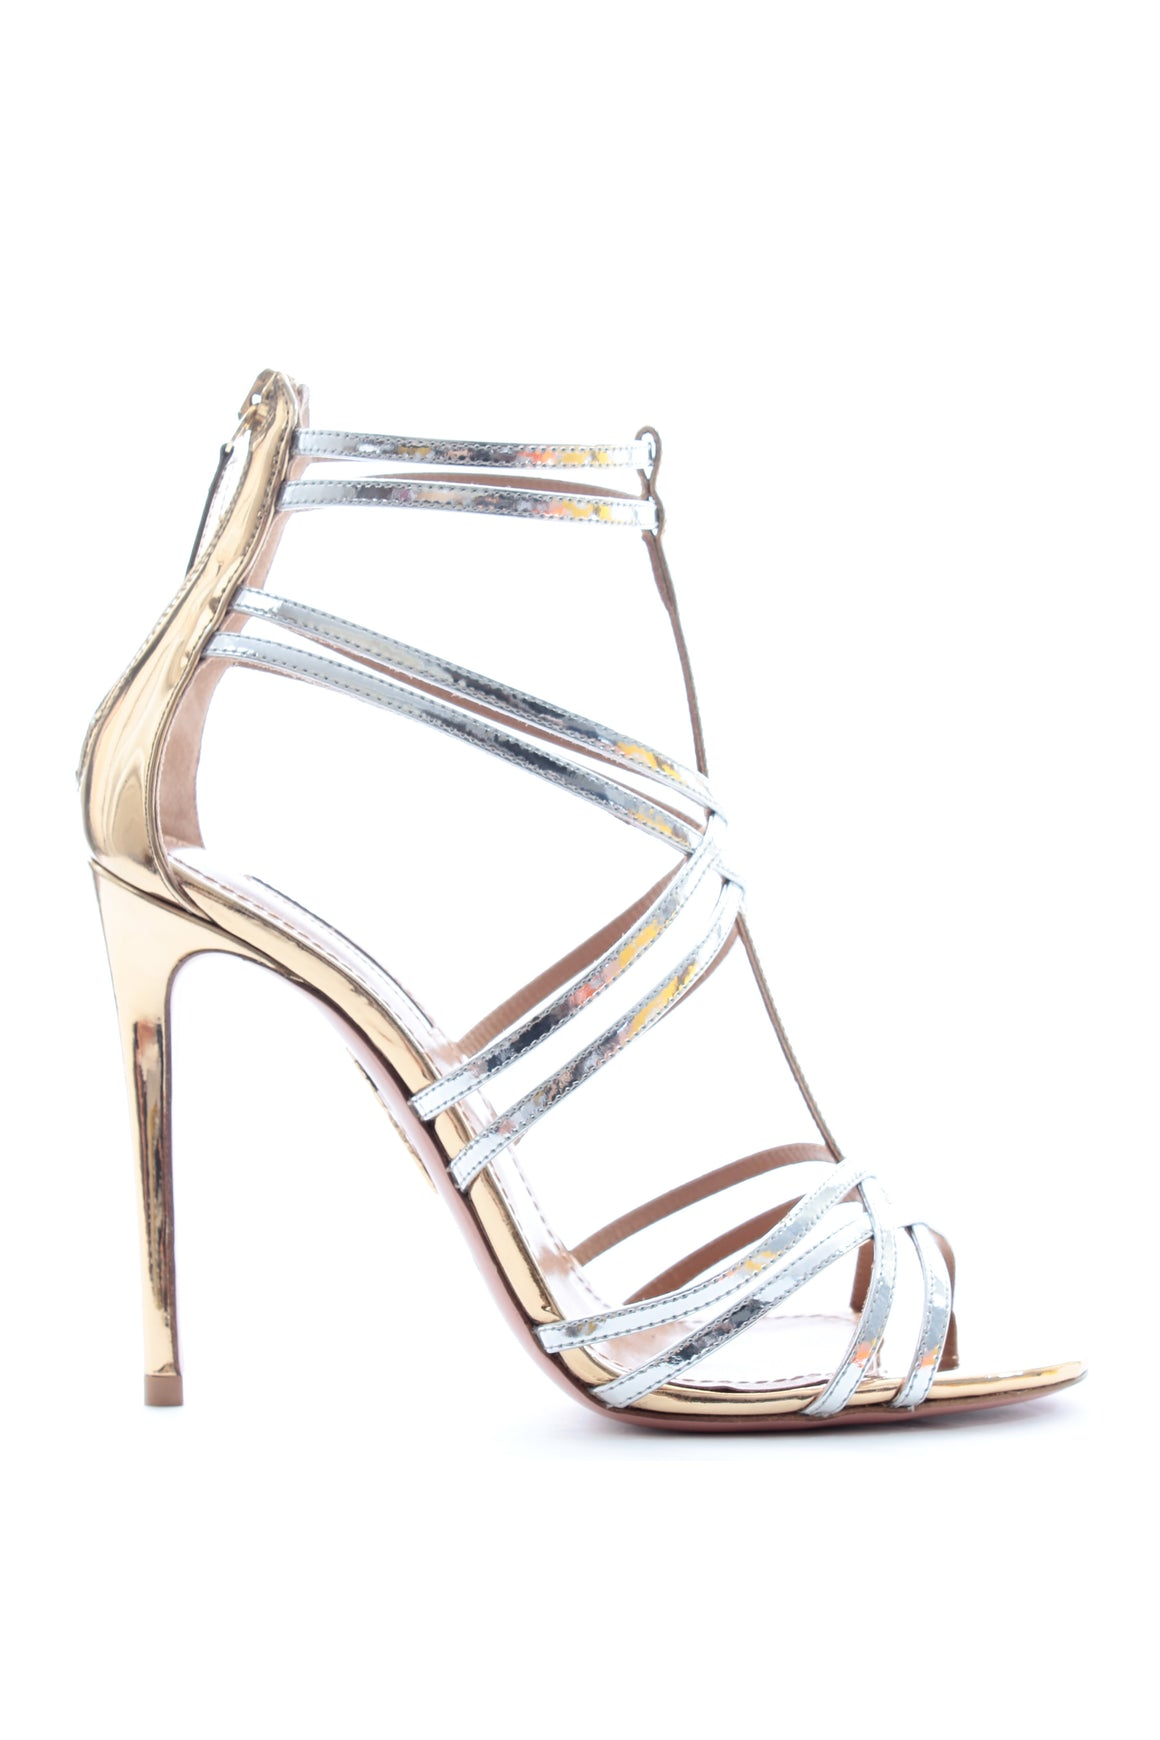 Aquazzura Princess 105 Metallic Leather Sandals